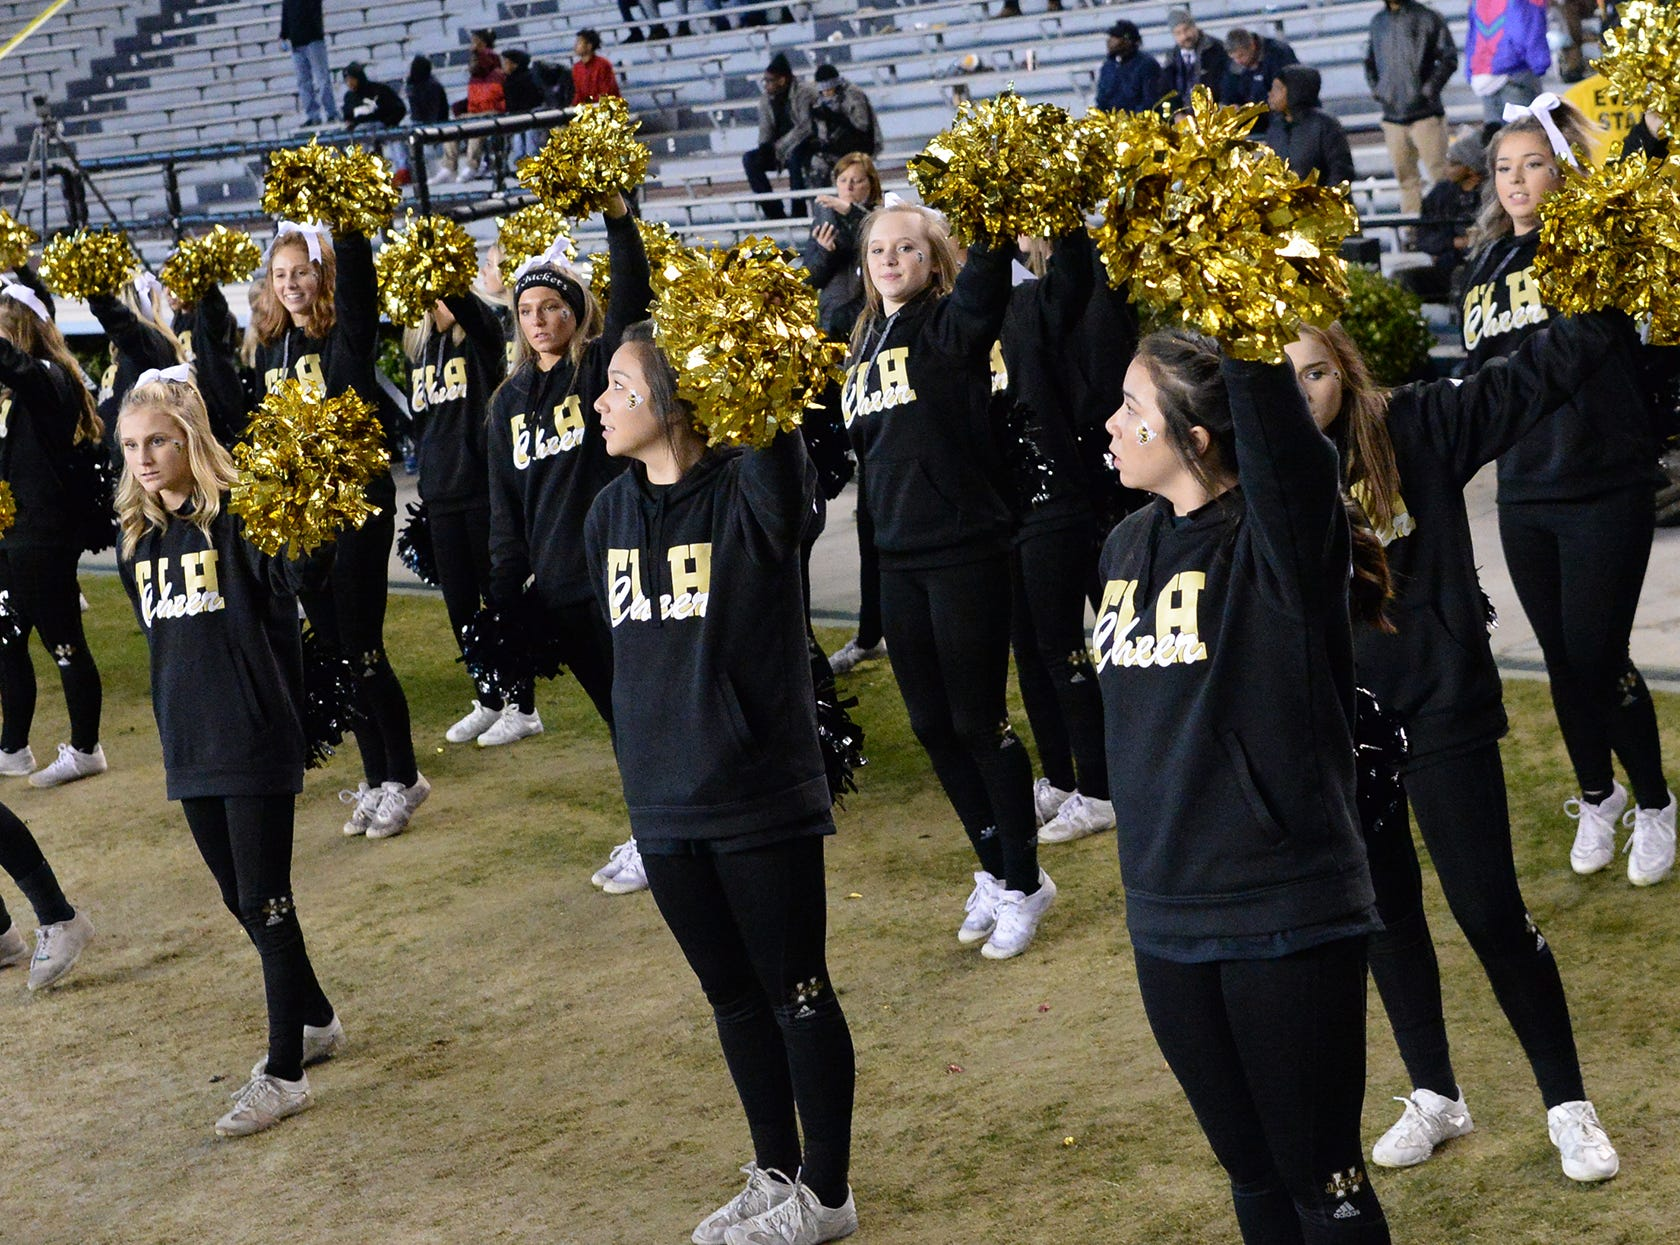 TL Hanna High School cheerleaders during the second quarter of the Class AAAAA state championship game at Williams-Brice Stadium in Columbia Saturday, December 8, 2018.